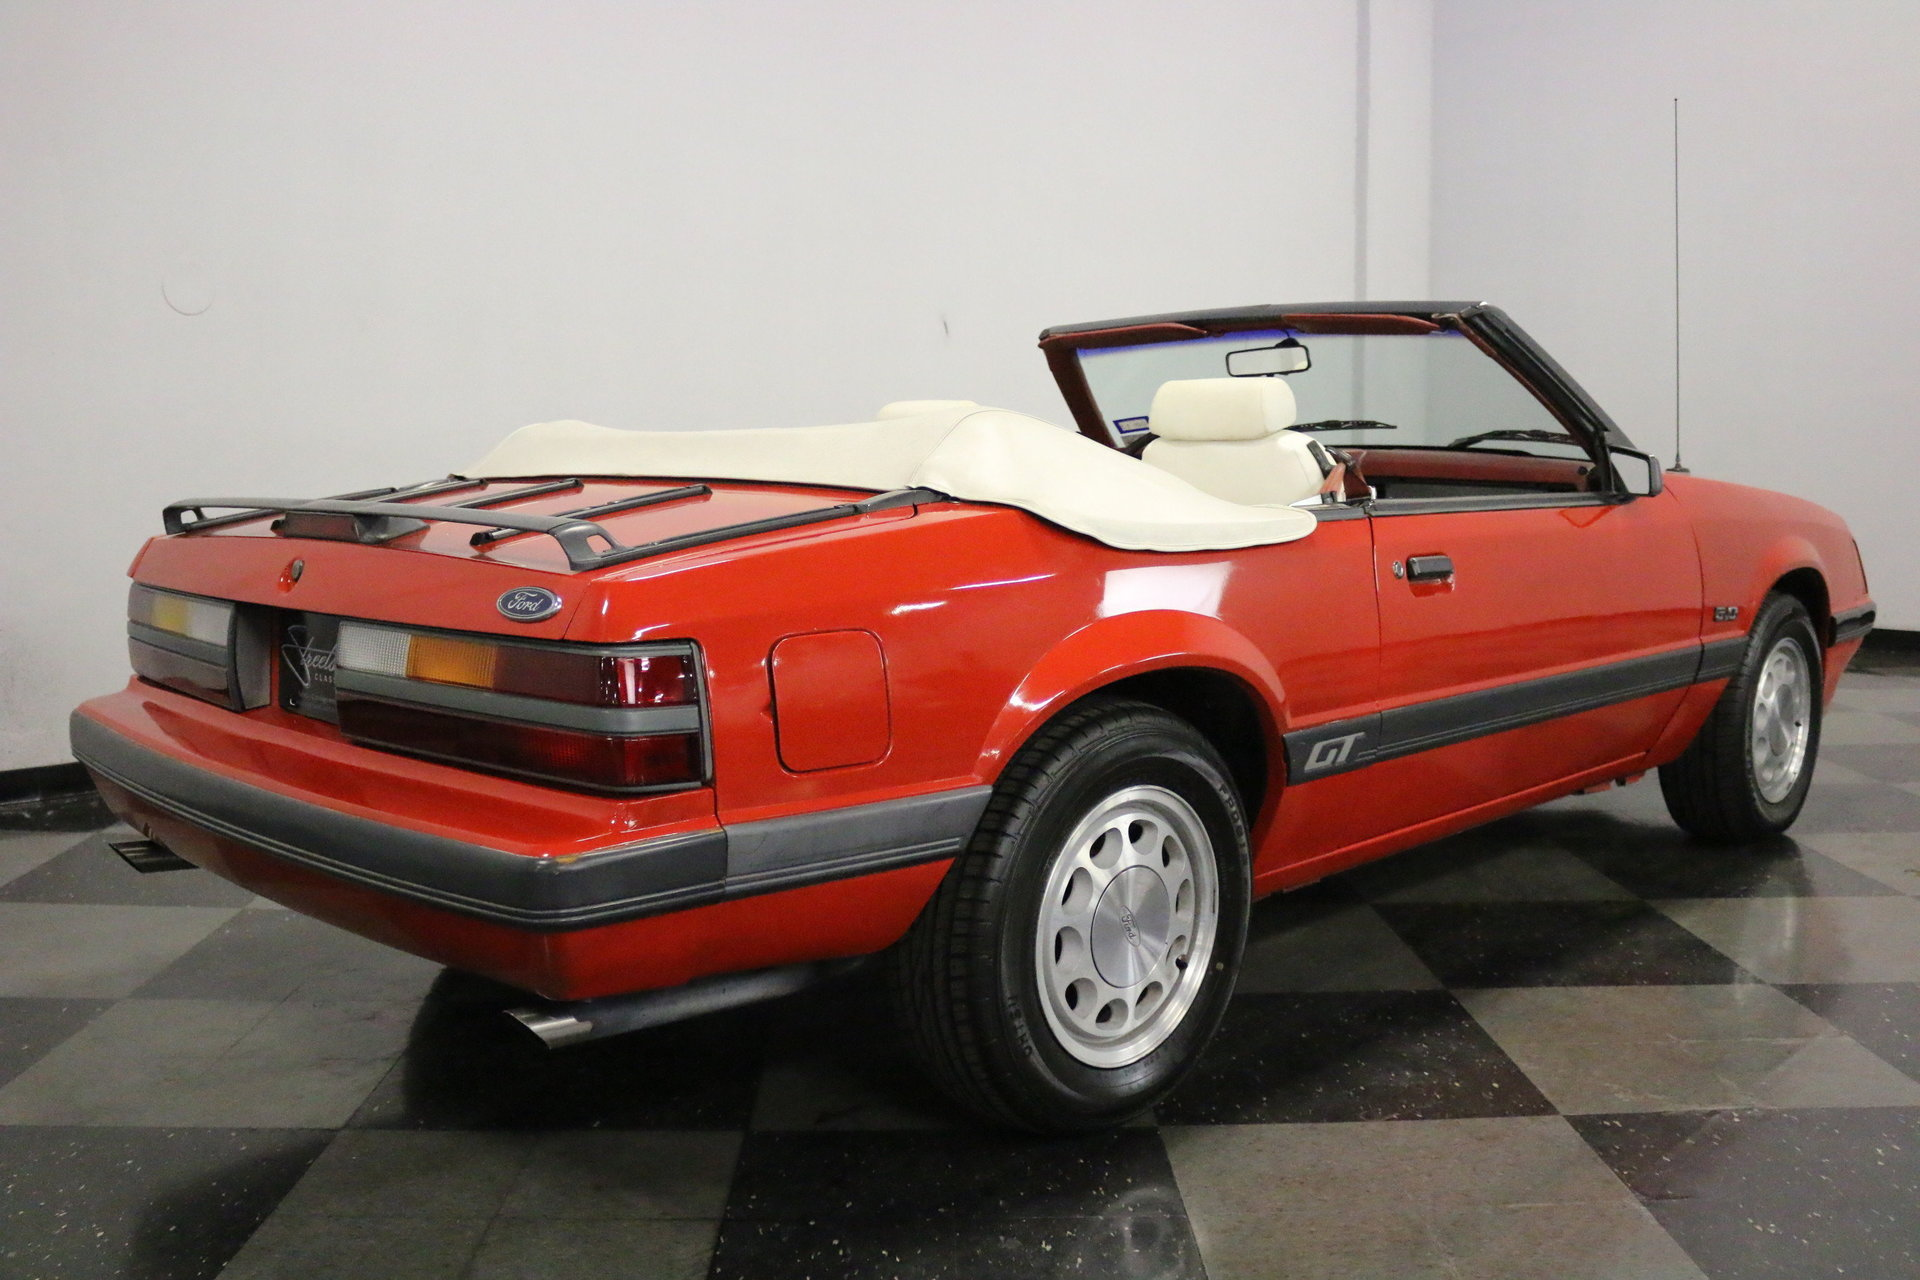 1986 Ford Mustang Streetside Classics The Nations Trusted Gt 5 0 Convertible View 360